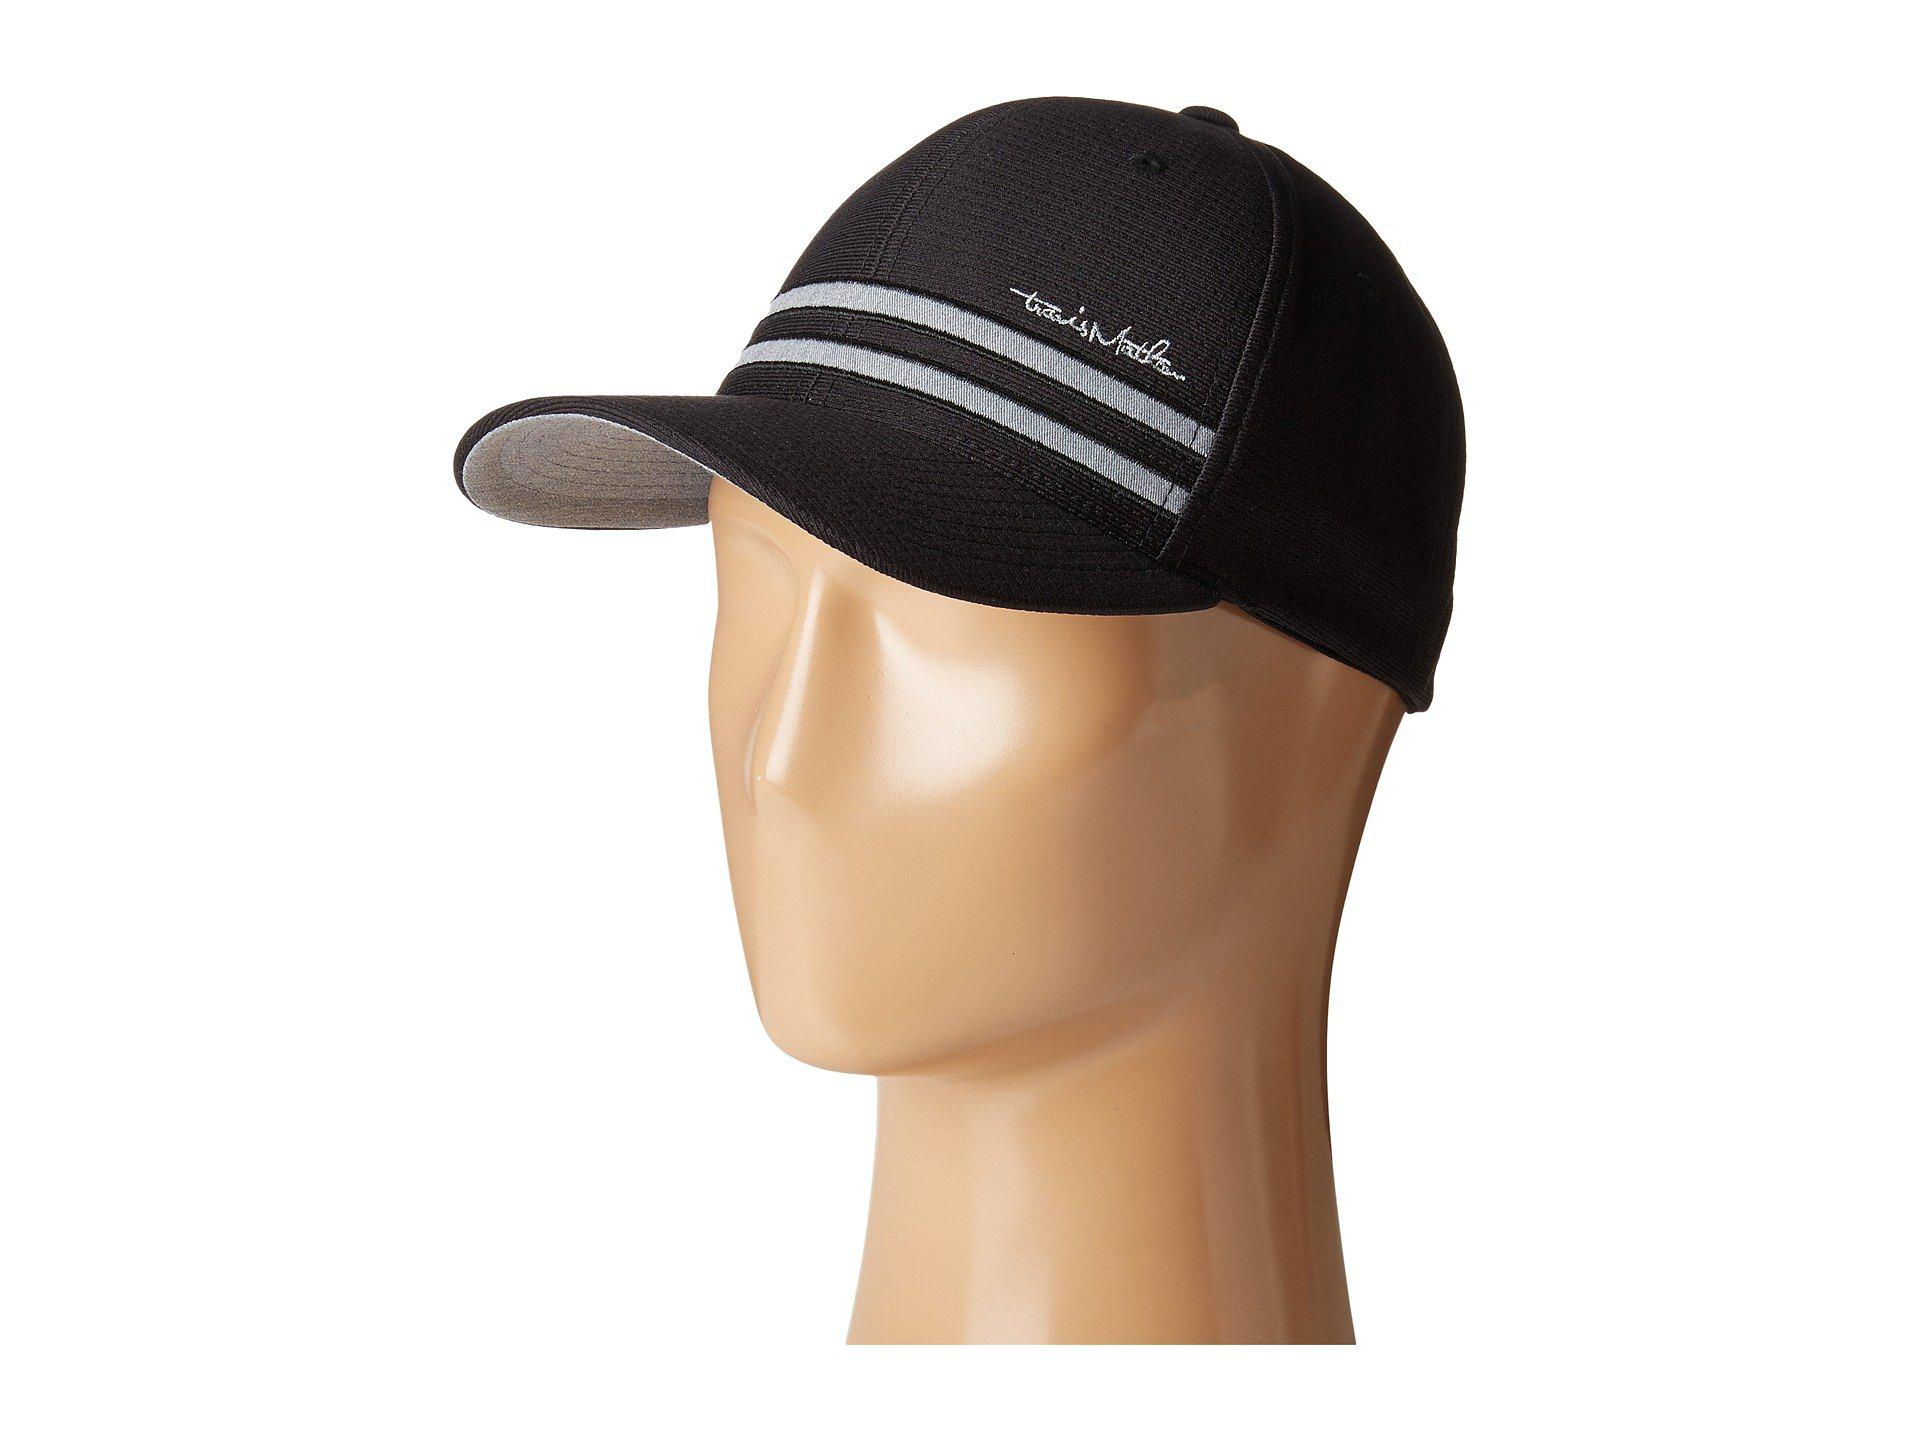 Lyst - Travis Mathew Hout (white) Caps in Black for Men 51300f4bac5c